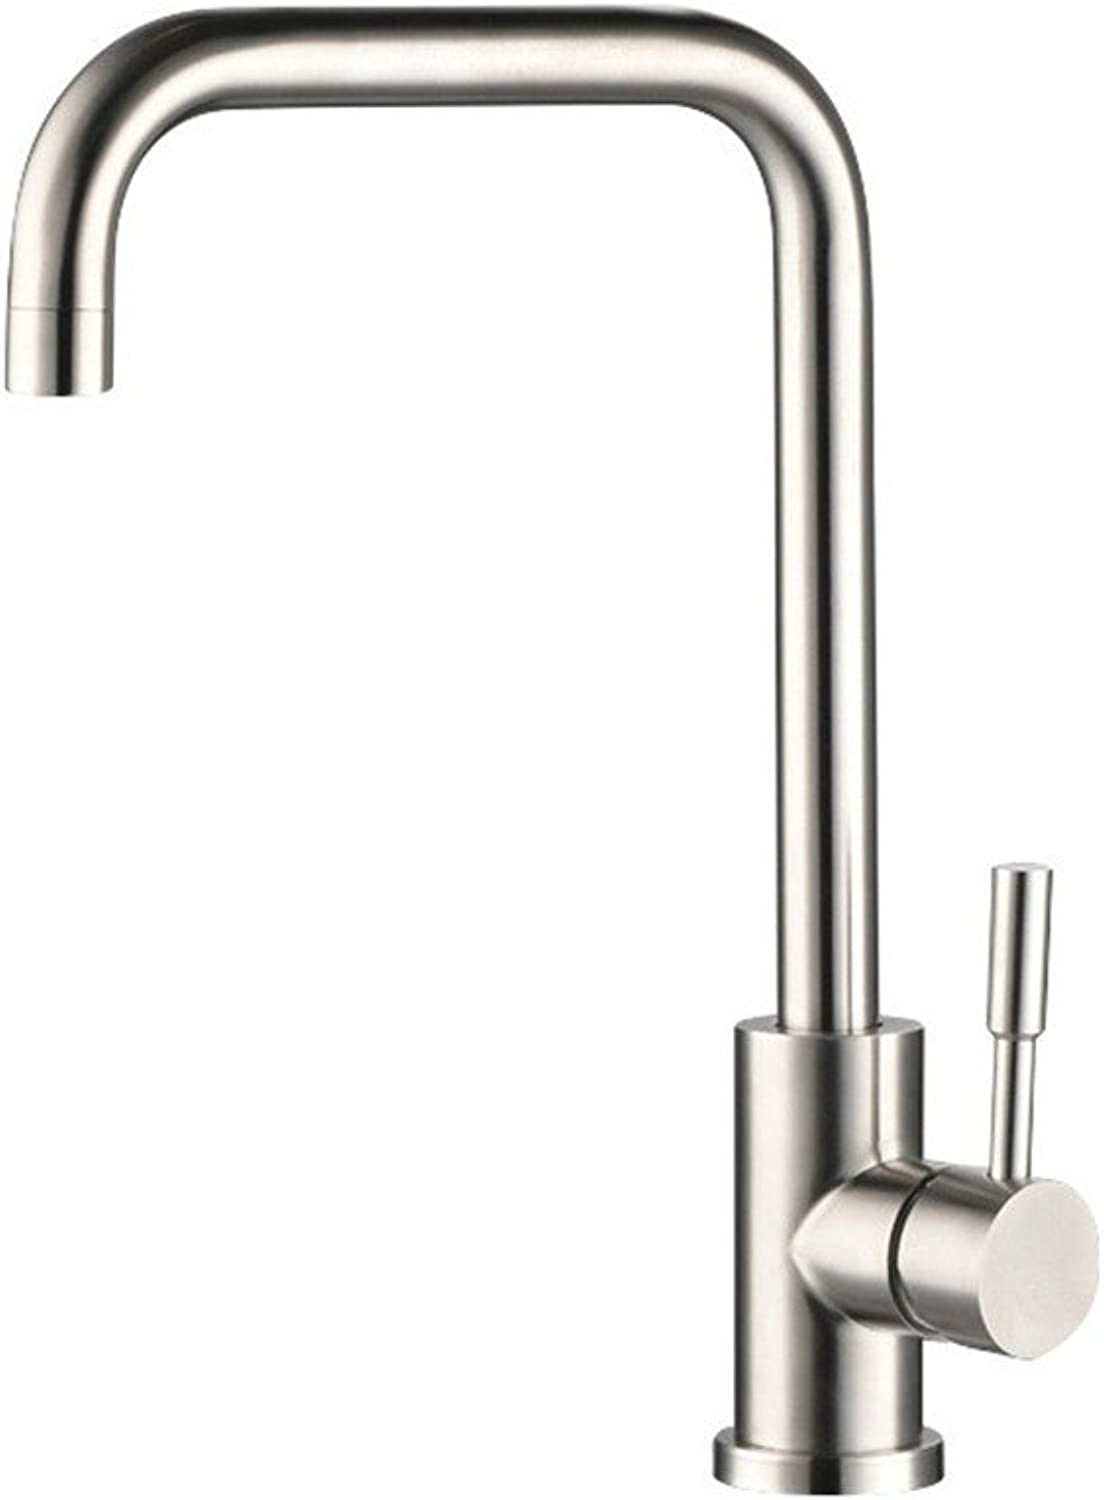 Bijjaladeva Antique Bathroom Sink Vessel Faucet Basin Mixer Tap Stainless steel kitchen faucet and cold water to wash dishes pots steel basin sink mixer water valve kit B